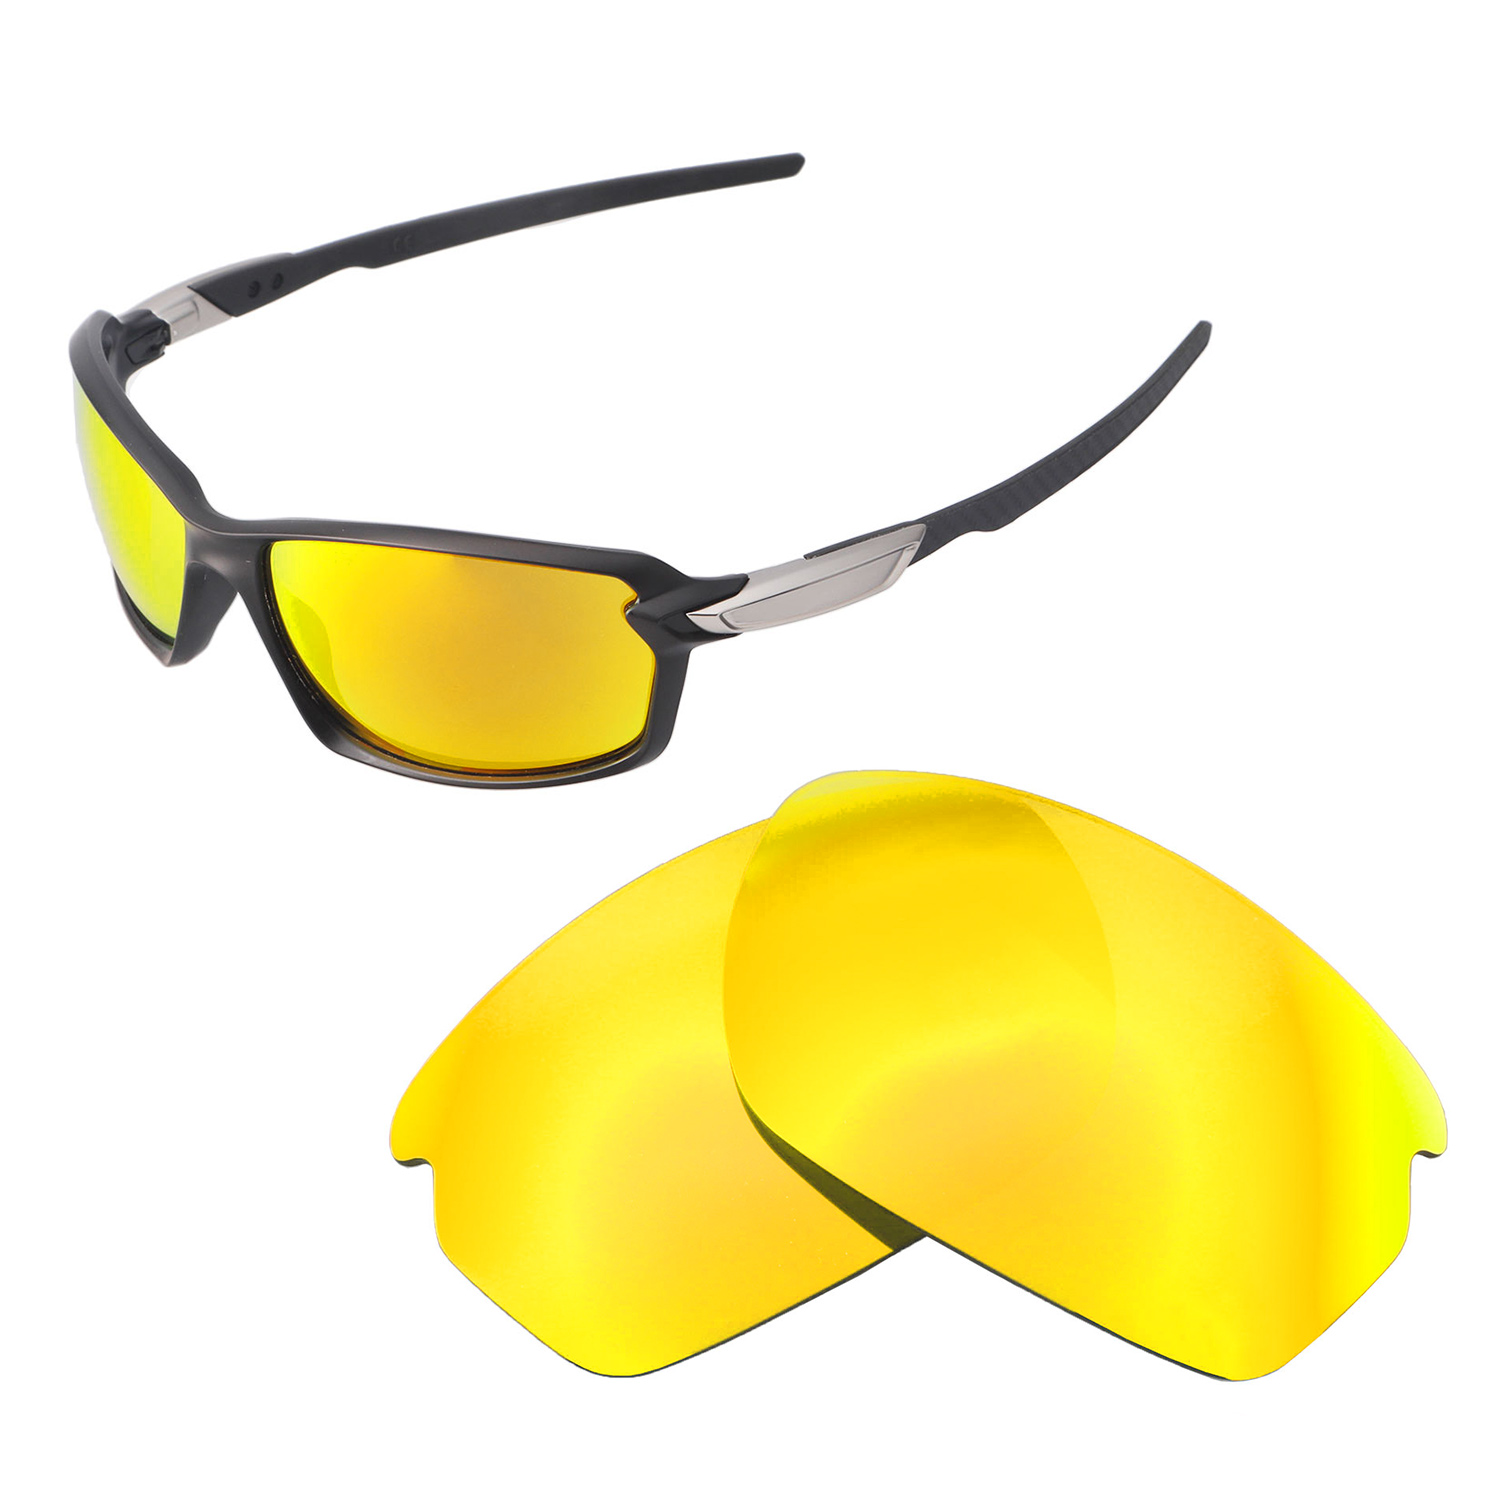 88bc17347d Details about Walleva 24K Gold Polarized Replacement Lenses For Oakley  Carbon Shift Sunglasses